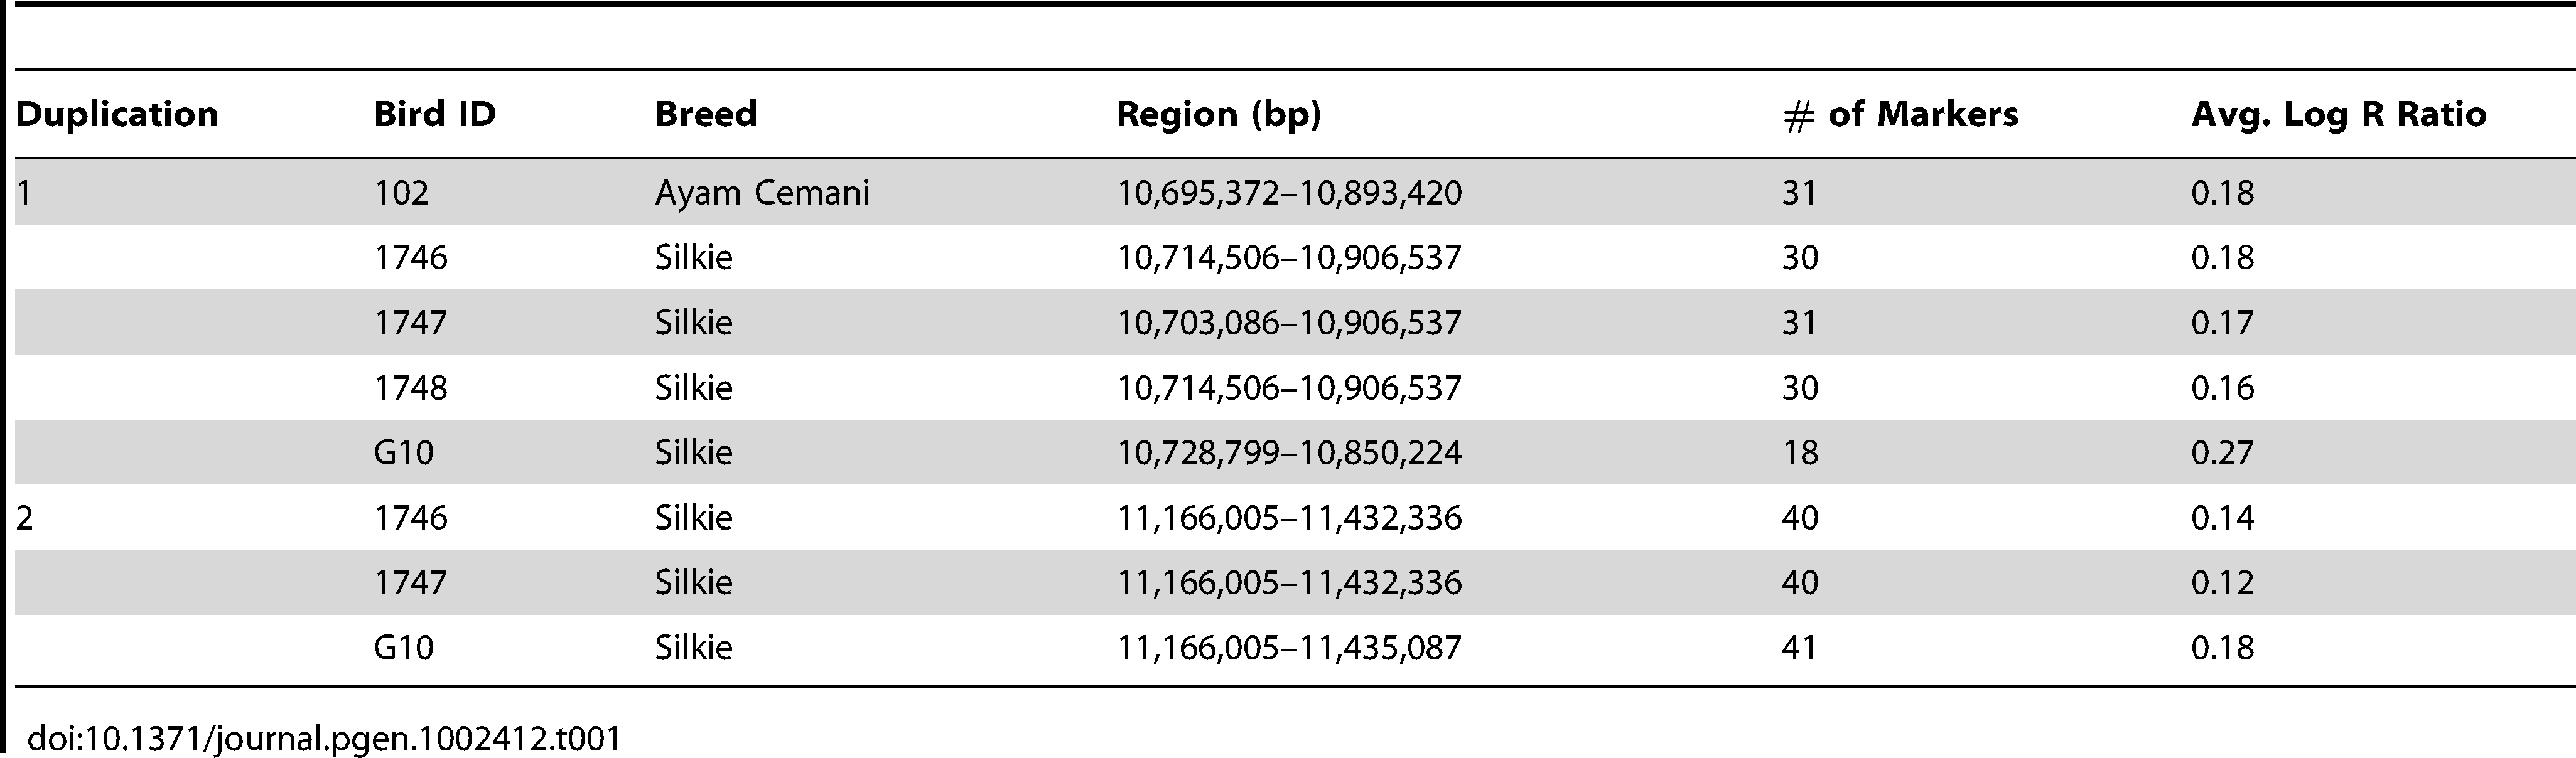 Duplicated genomic regions associated with the FM phenotype identified using SNP data from the 60K Chicken iSelect chip on an individual basis.